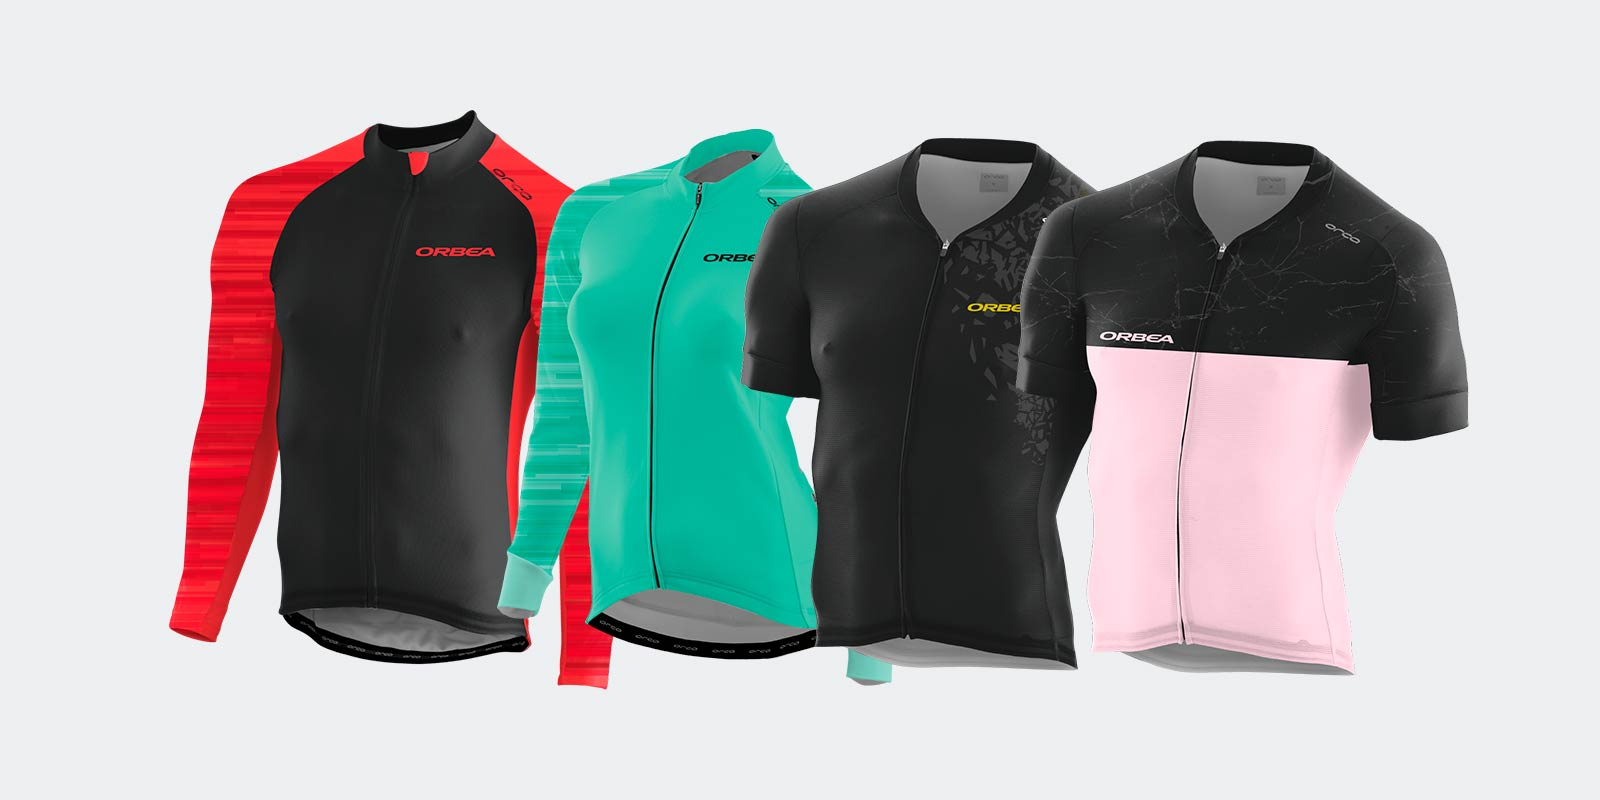 NEW FALL-WINTER ORBEA CYCLING APPAREL